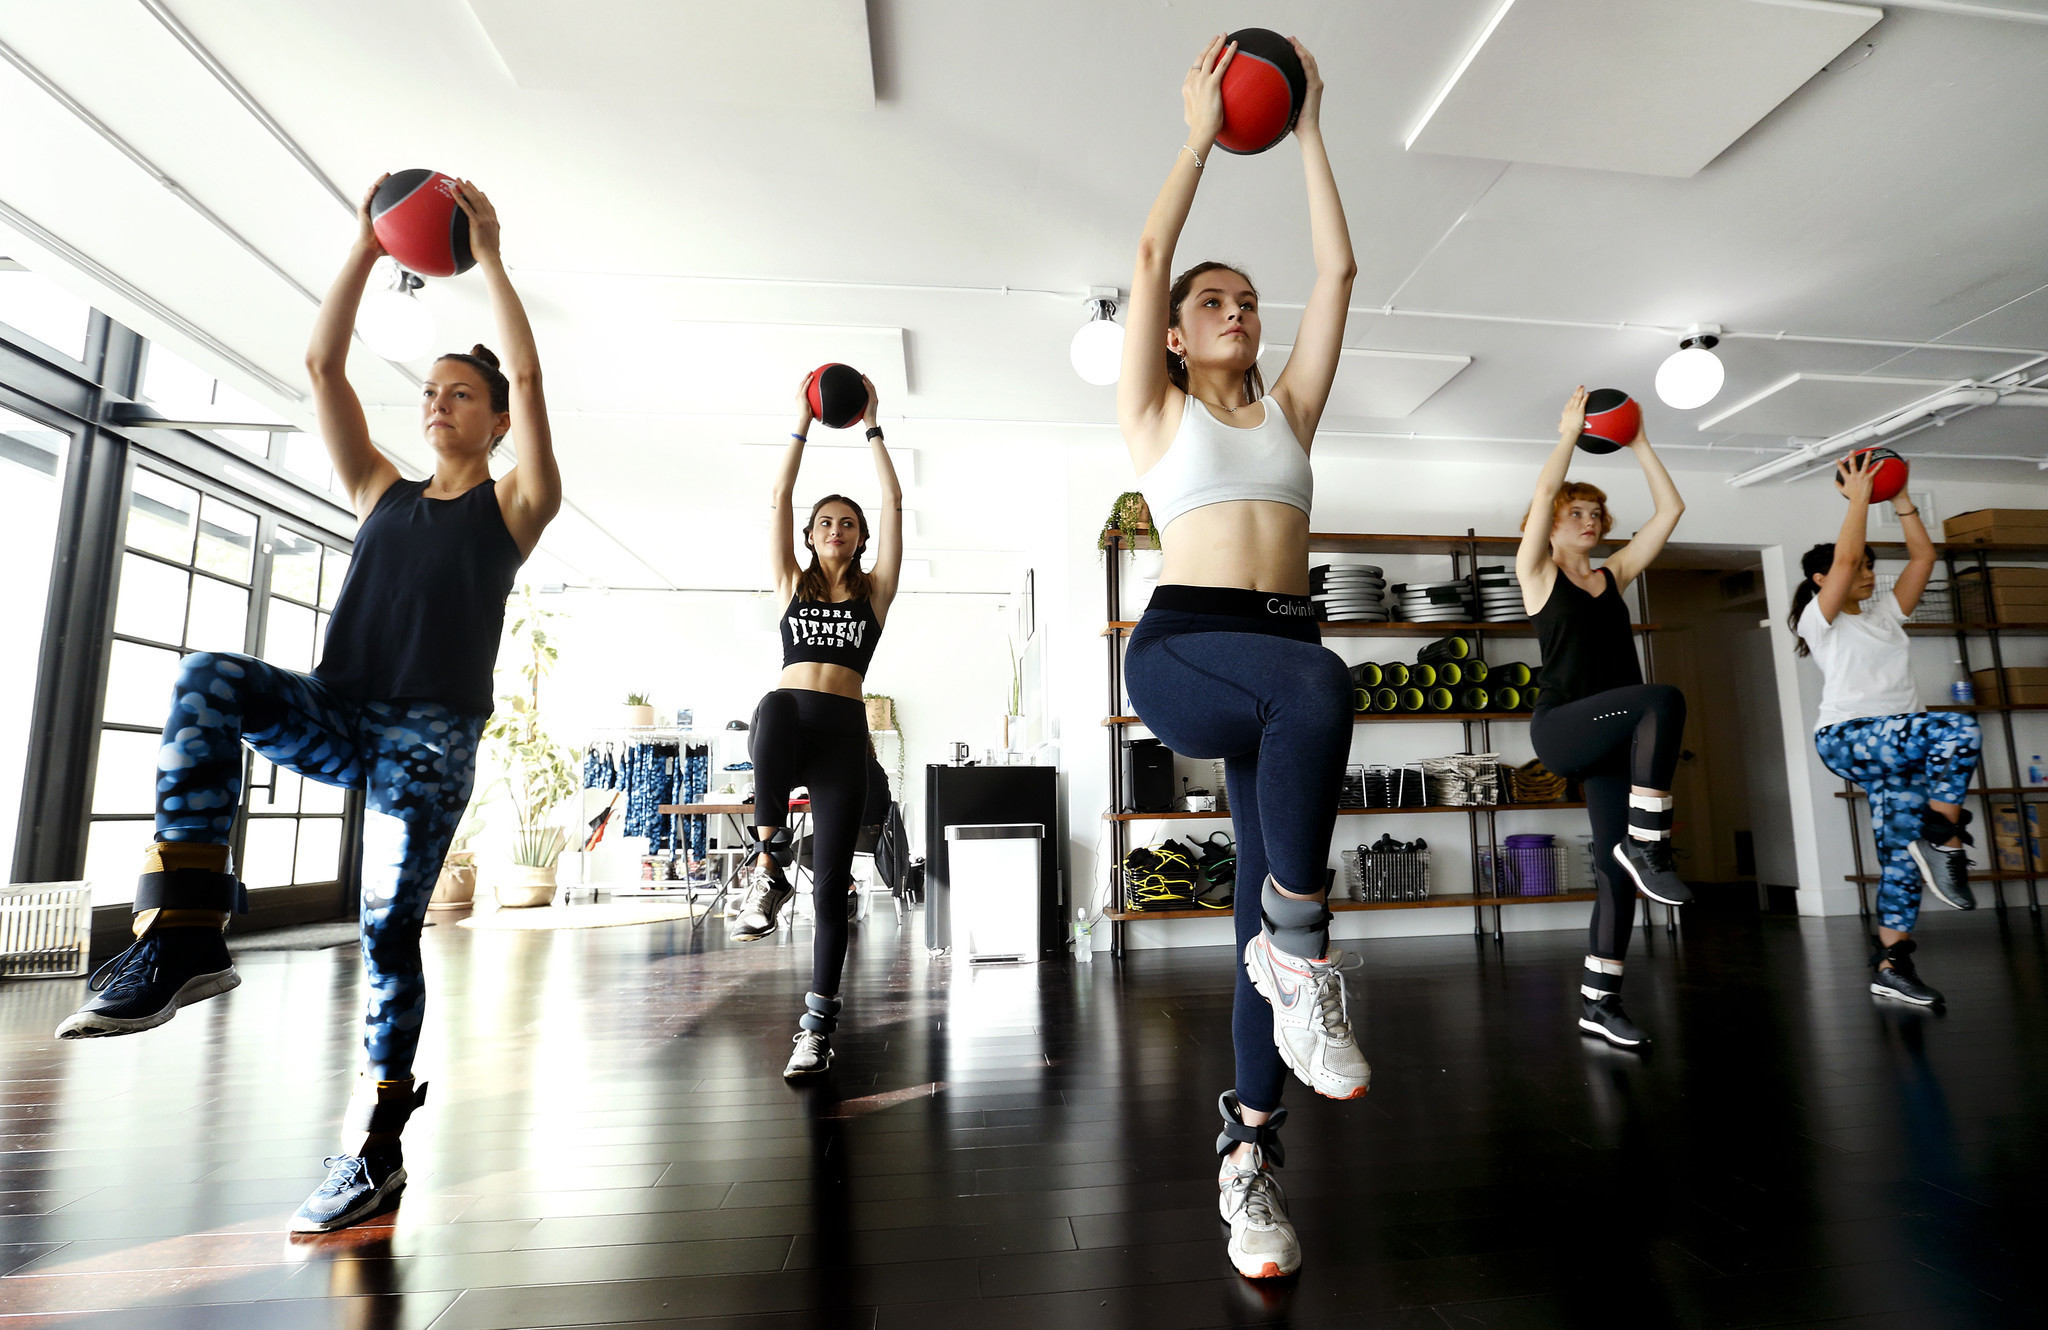 It 39 s called the 39 supermodel workout 39 la times for Gimnasio fitness las rosas